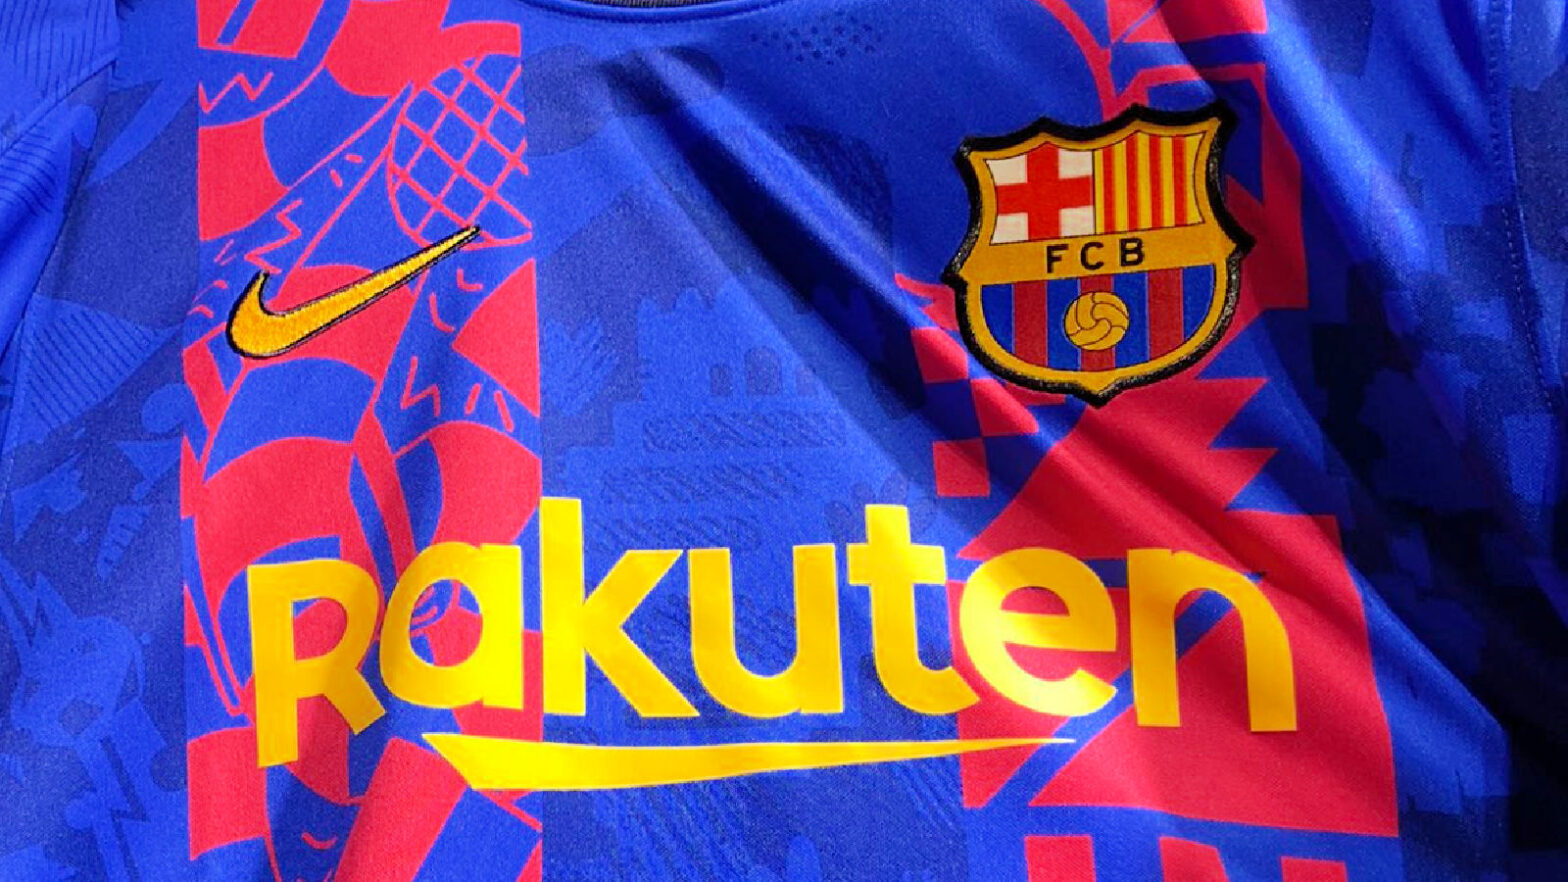 New Barcelona 21_22 Champions League edition kit from Nike